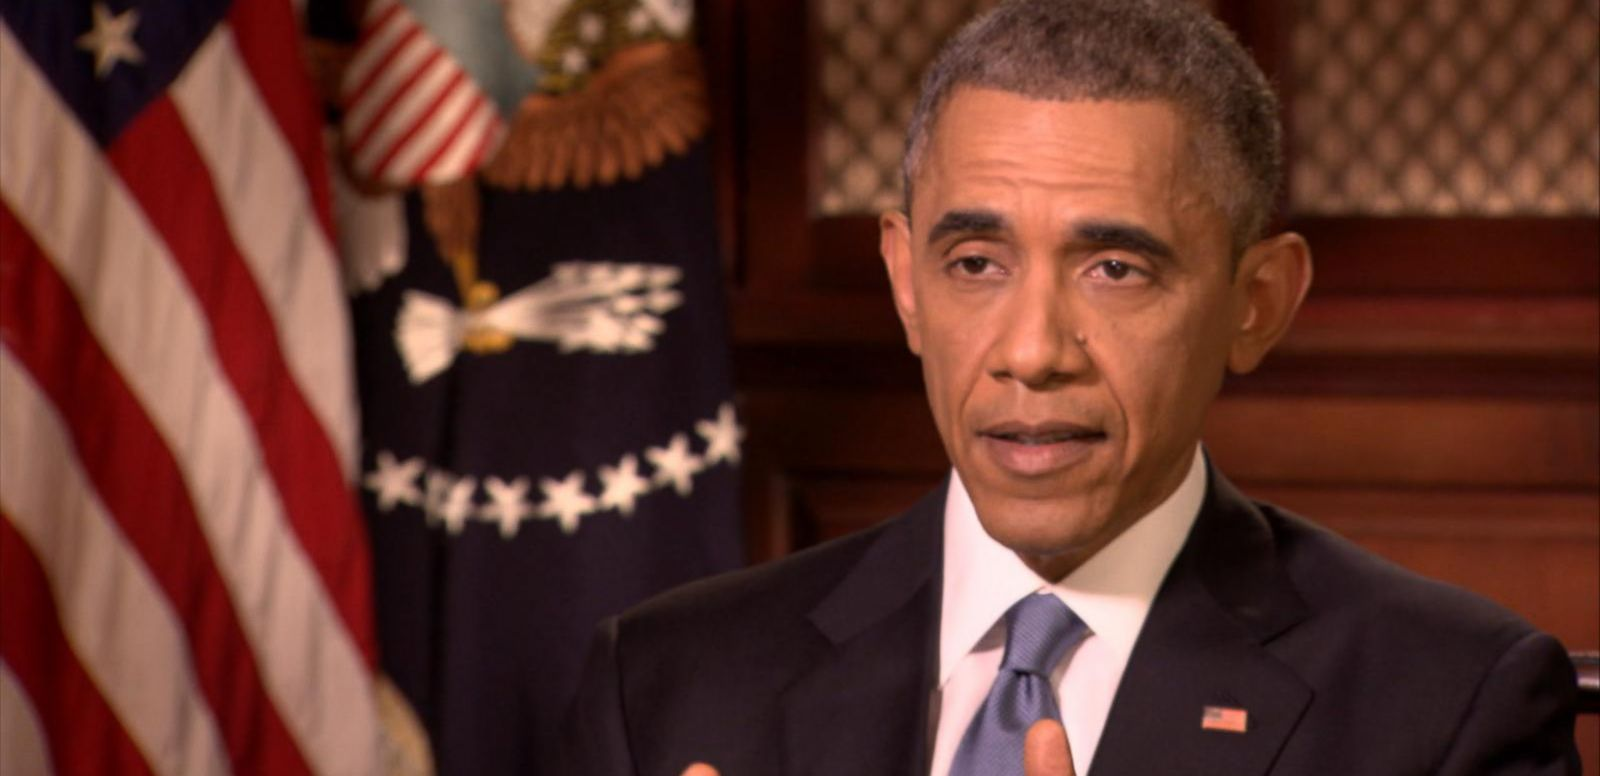 VIDEO: Obama on Sony Cyber Attack